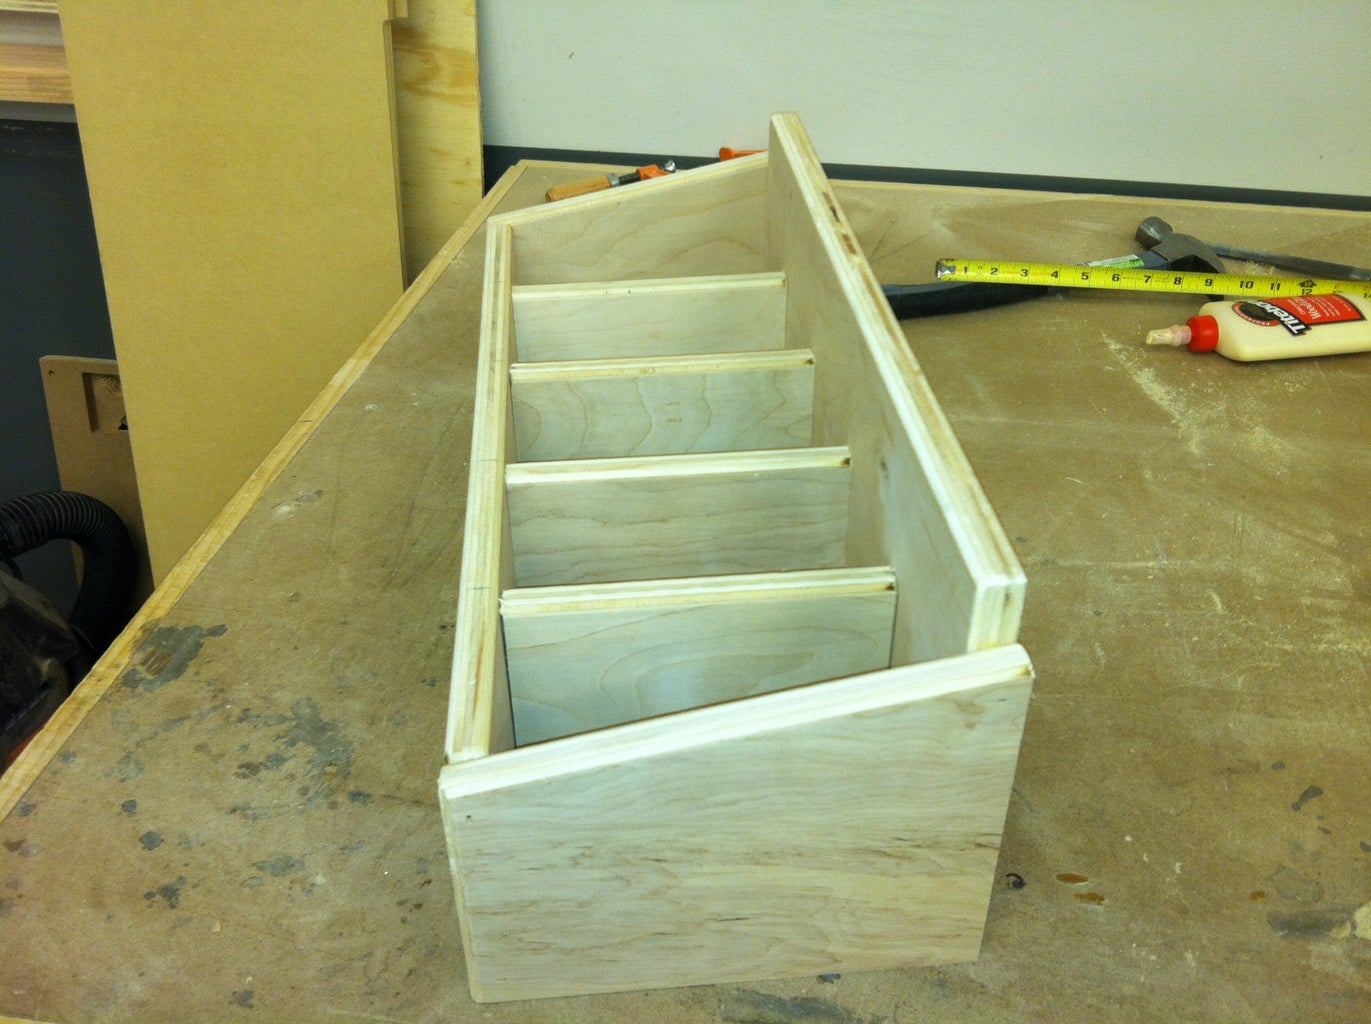 Design for a Tool Crib Caddie and Catch All.